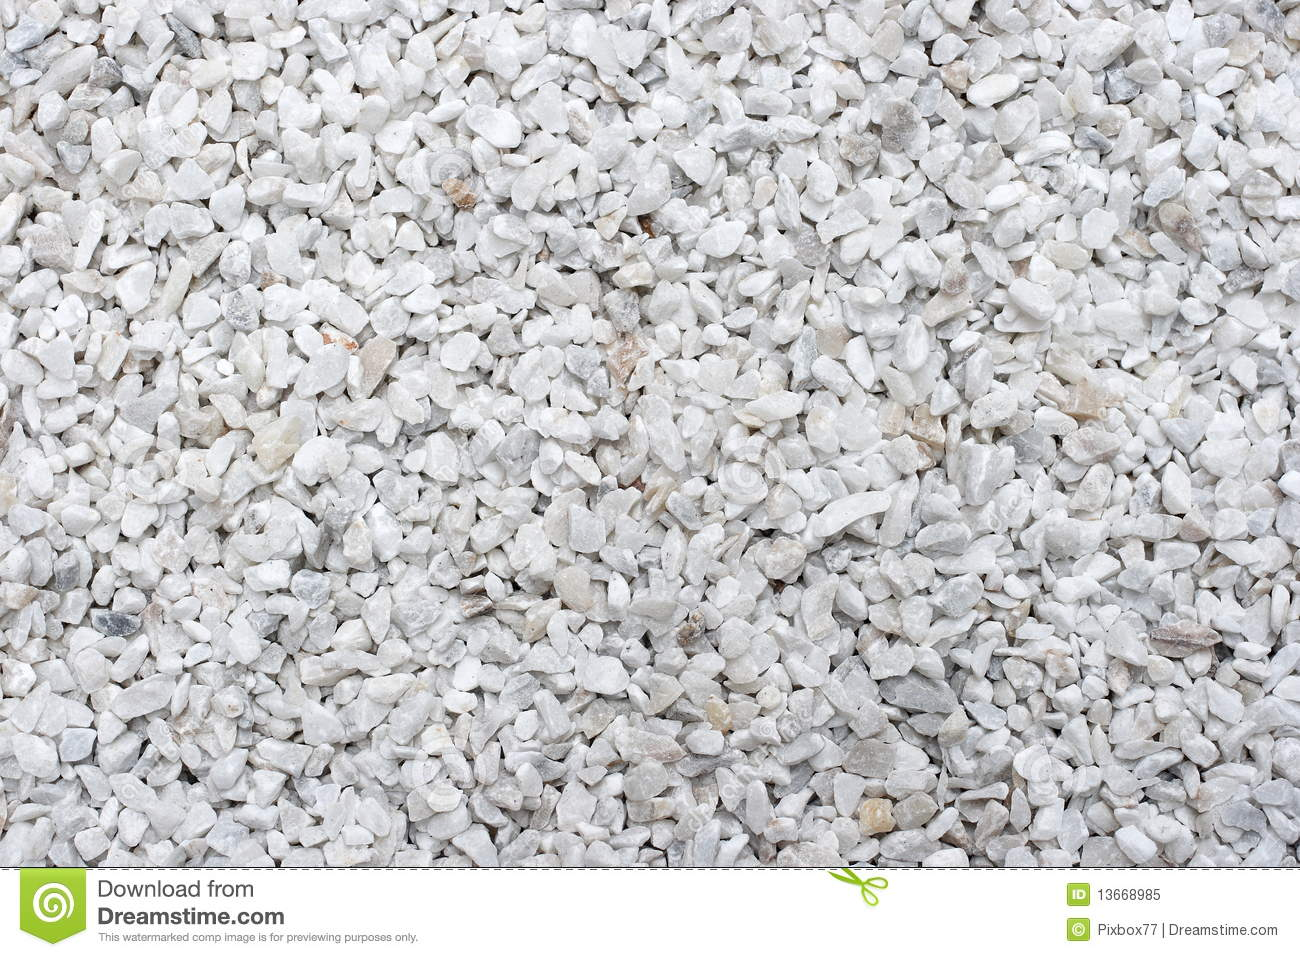 Gravier blanc photo libre de droits image 13668985 for Jardin en gravier blanc